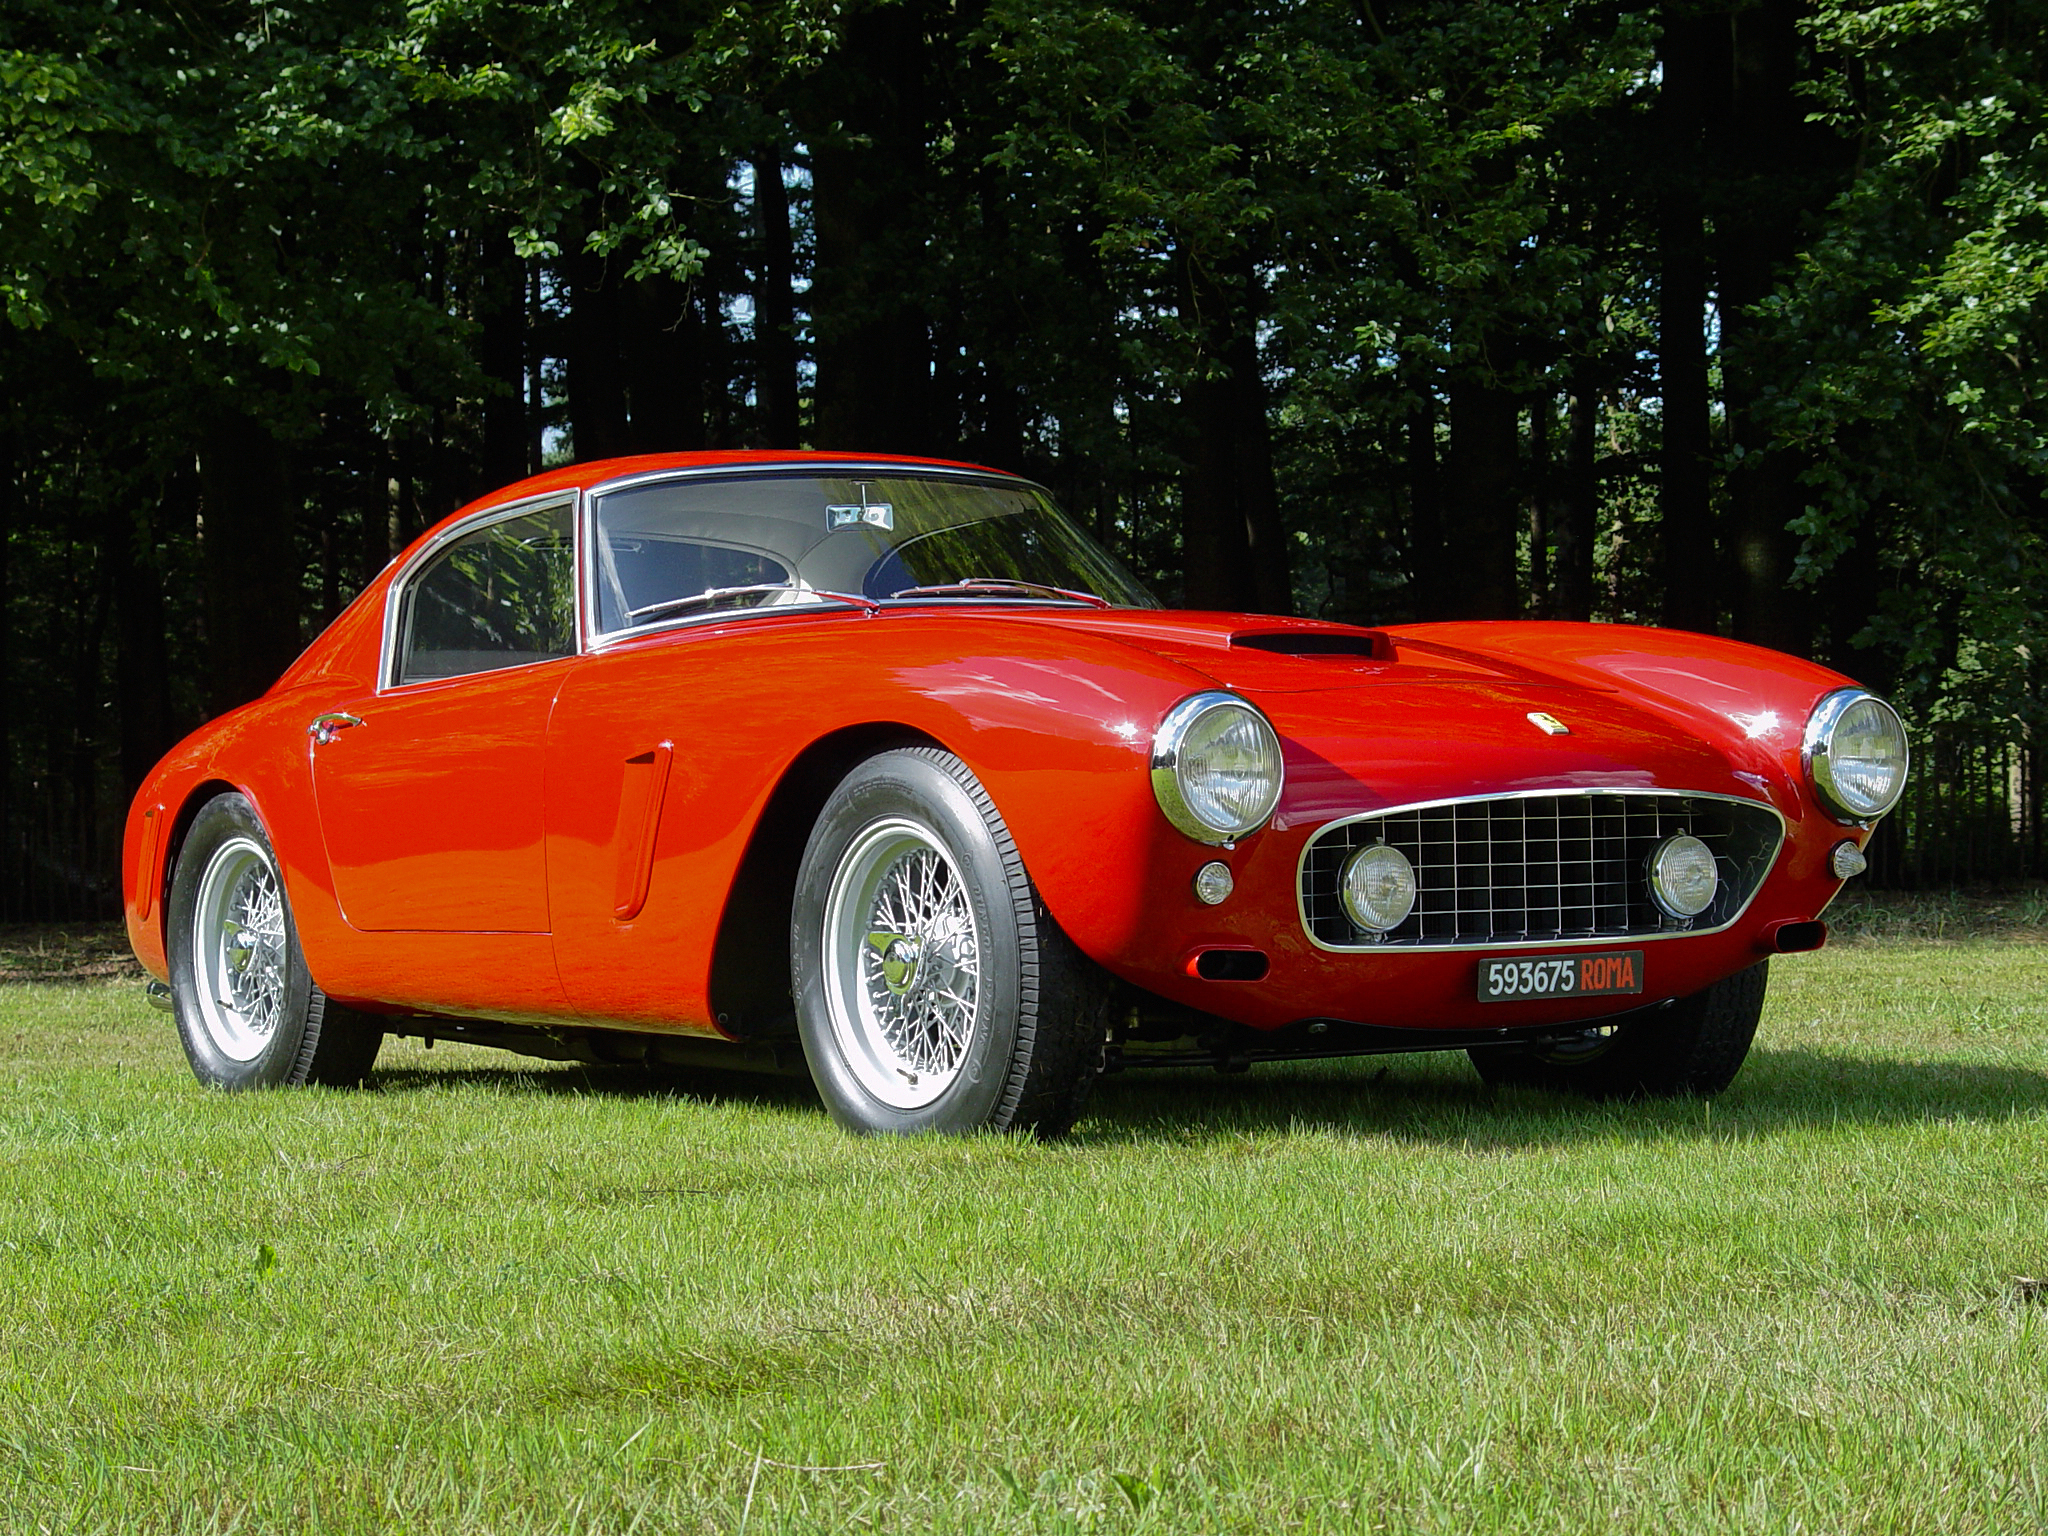 FERRARI 250 GT SWB ON A LAWN IN THE SUN BY POGO02